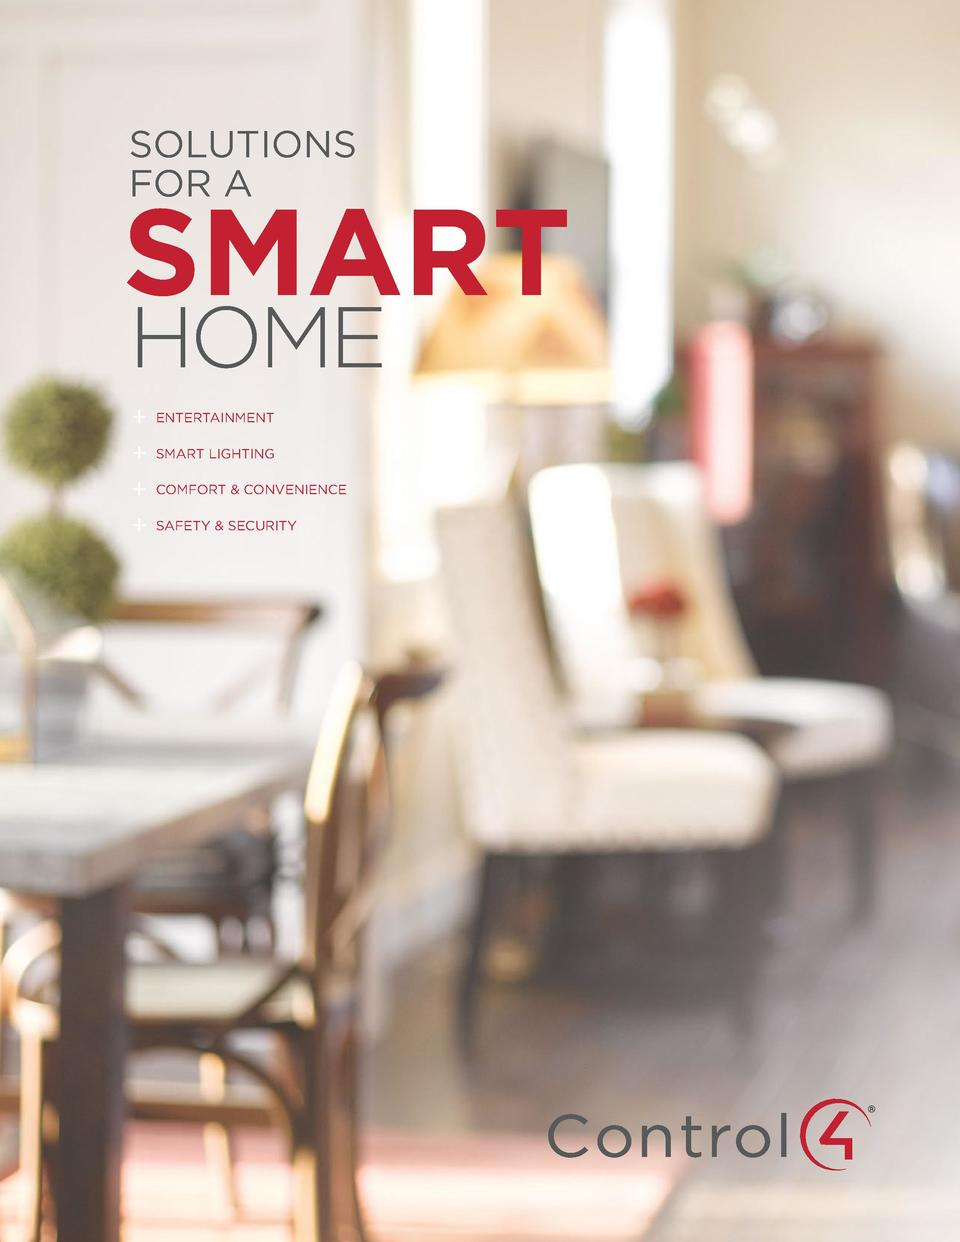 SOLUTIONS    FOR A  SMART  HOME          ENTERTAINMENT SMART LIGHTING COMFORT   CONVENIENCE SAFETY   SECURITY